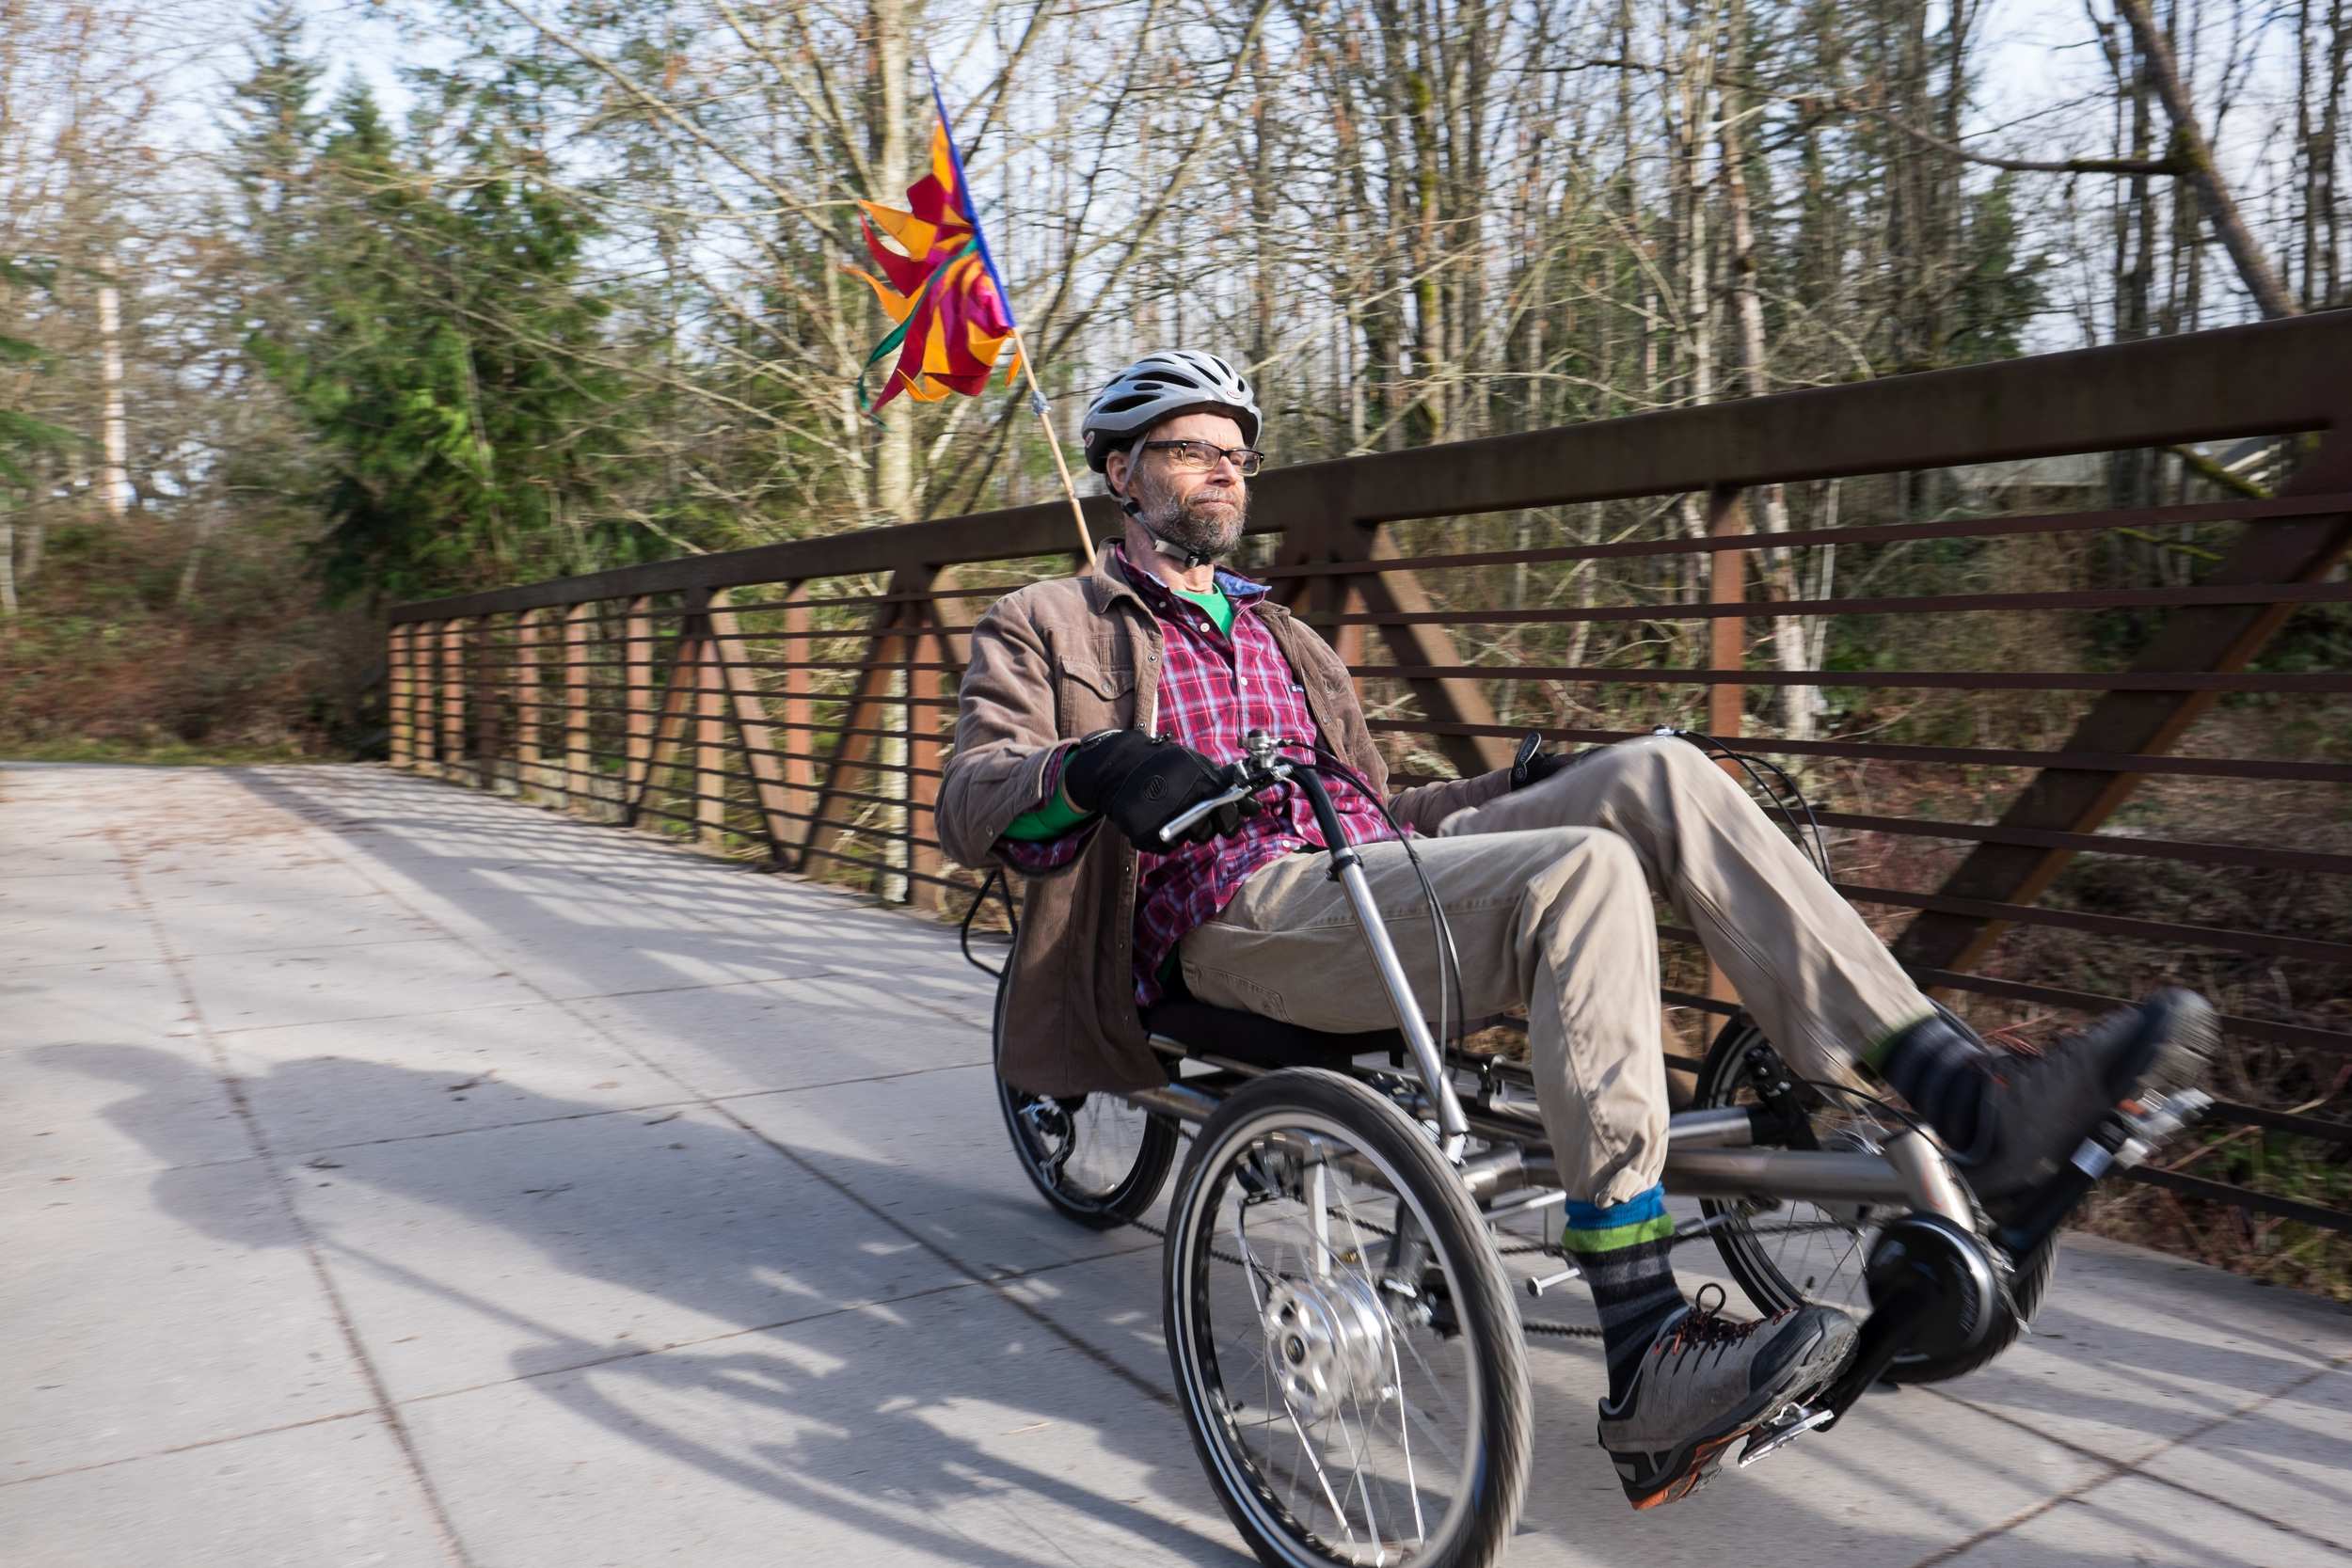 HERMANN ON HIS RECUMBENT BIKE ON BELLINGHAM'S RAILROAD TRAIL NEAR WHATCOM FALLS PARK. A RECUMBENT BIKE HAS HELPED HERMANN GET OUTSIDE TO STAY ACTIVE AND HAS ALSO SERVED AS AN ALTERNATE MODE OF TRANSPORTATION. For Klipsun Magazine